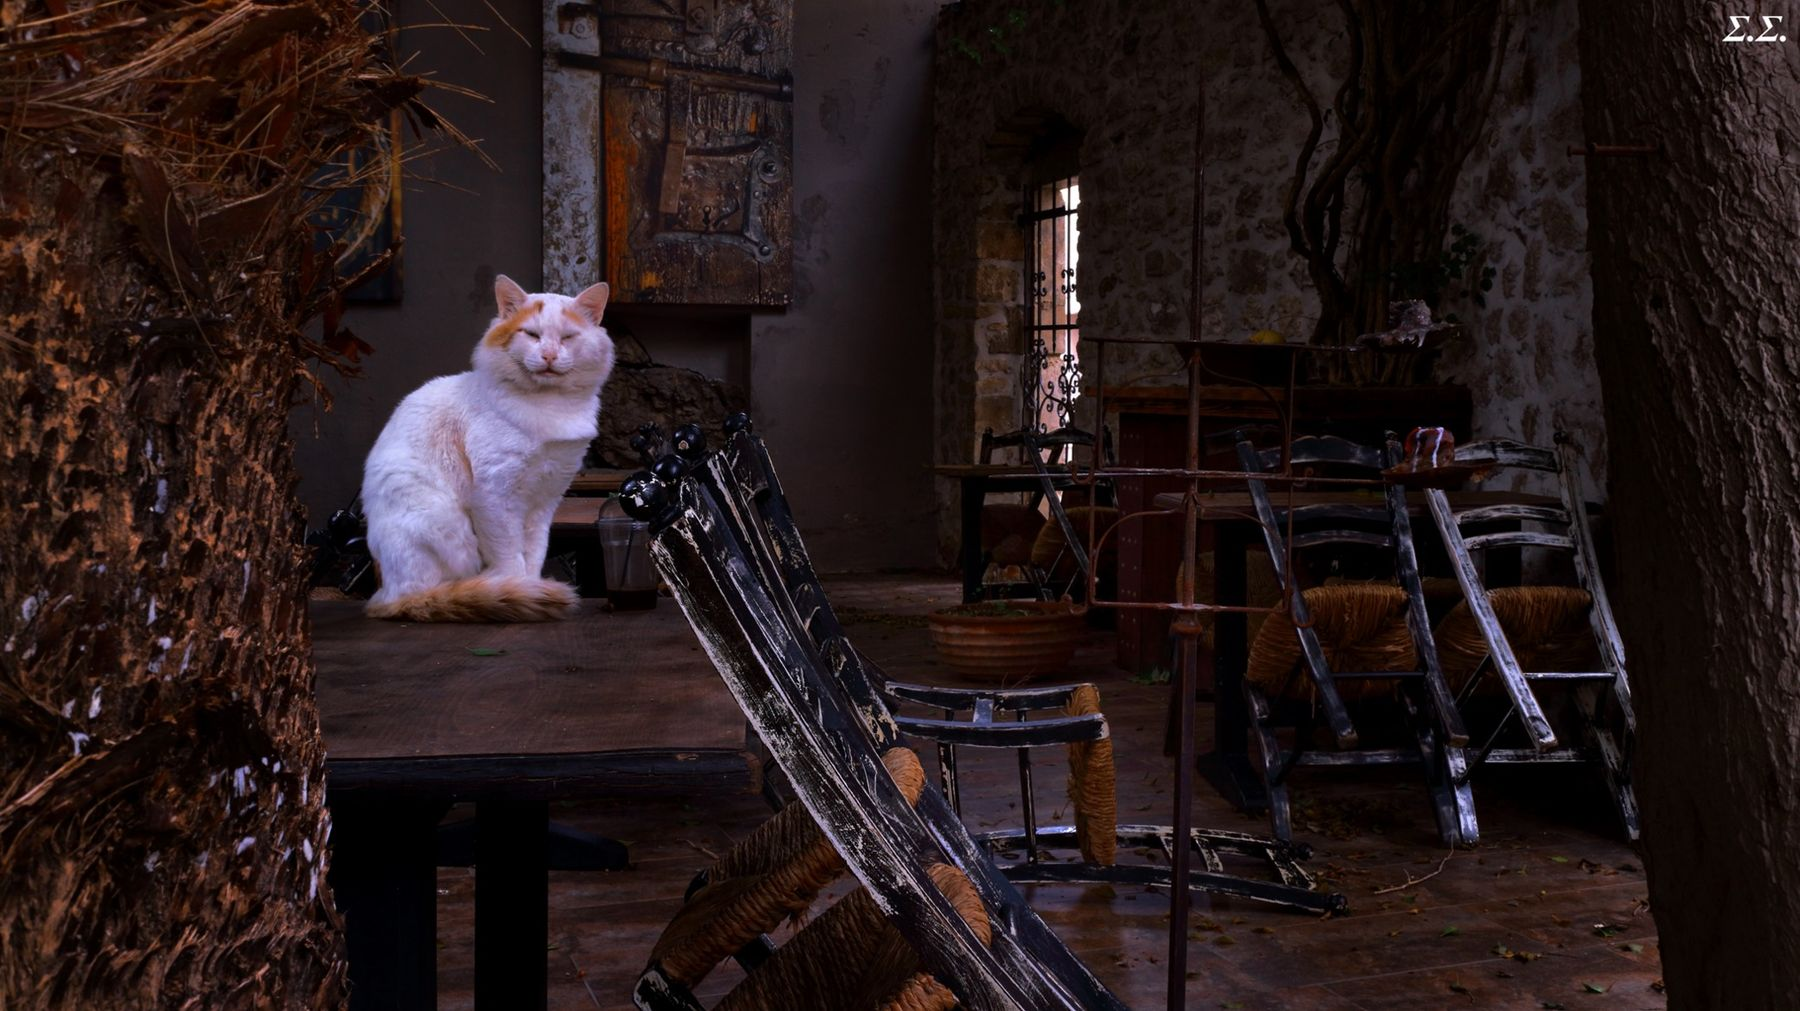 LONE CAT WITHIN THE ABANDONED RESTAURANT